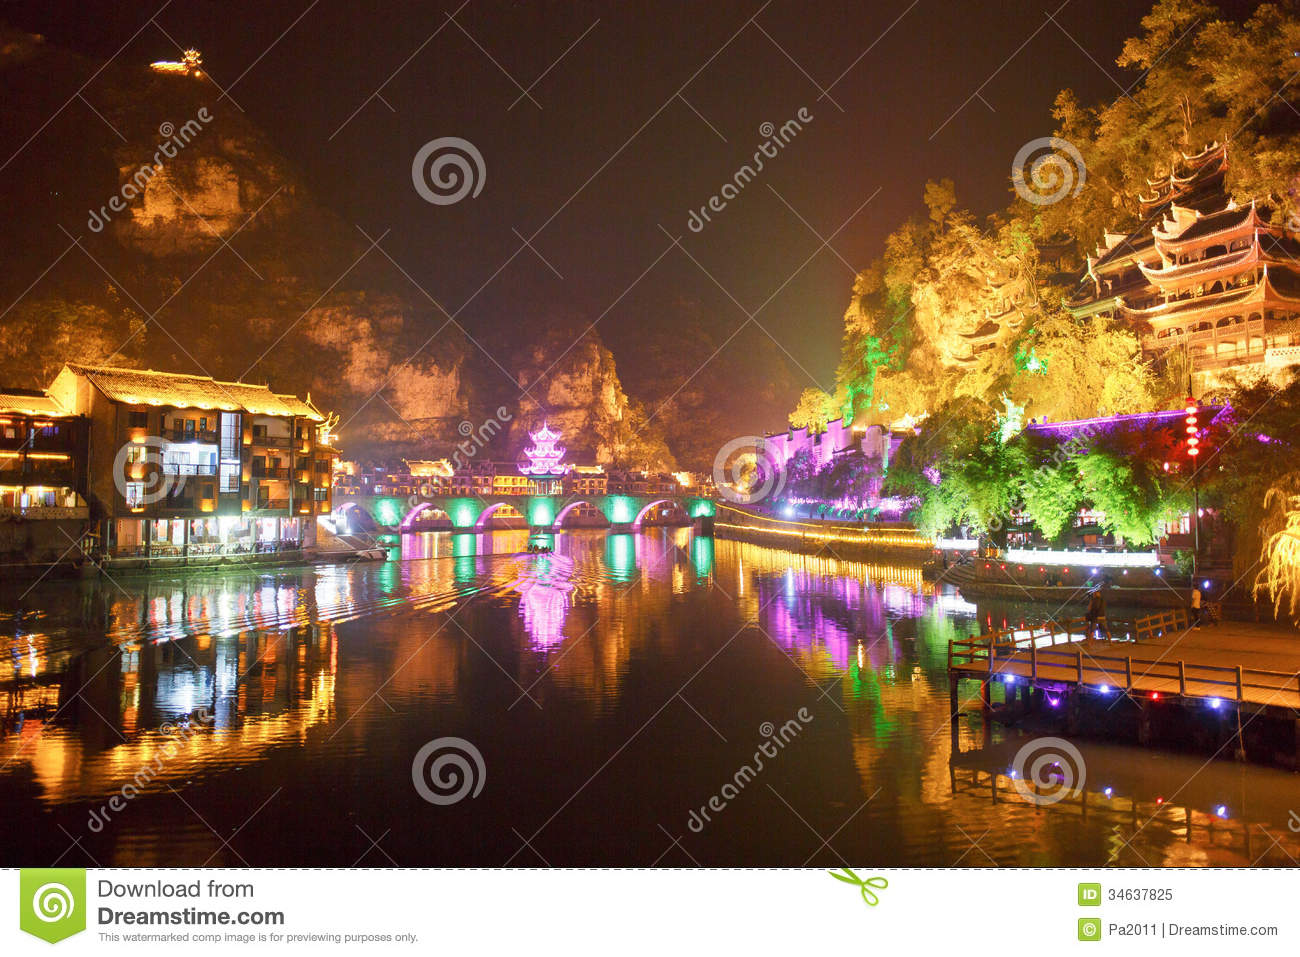 zhenyuan ancient town in guizhou china editorial image october clip art for free october clip art for free